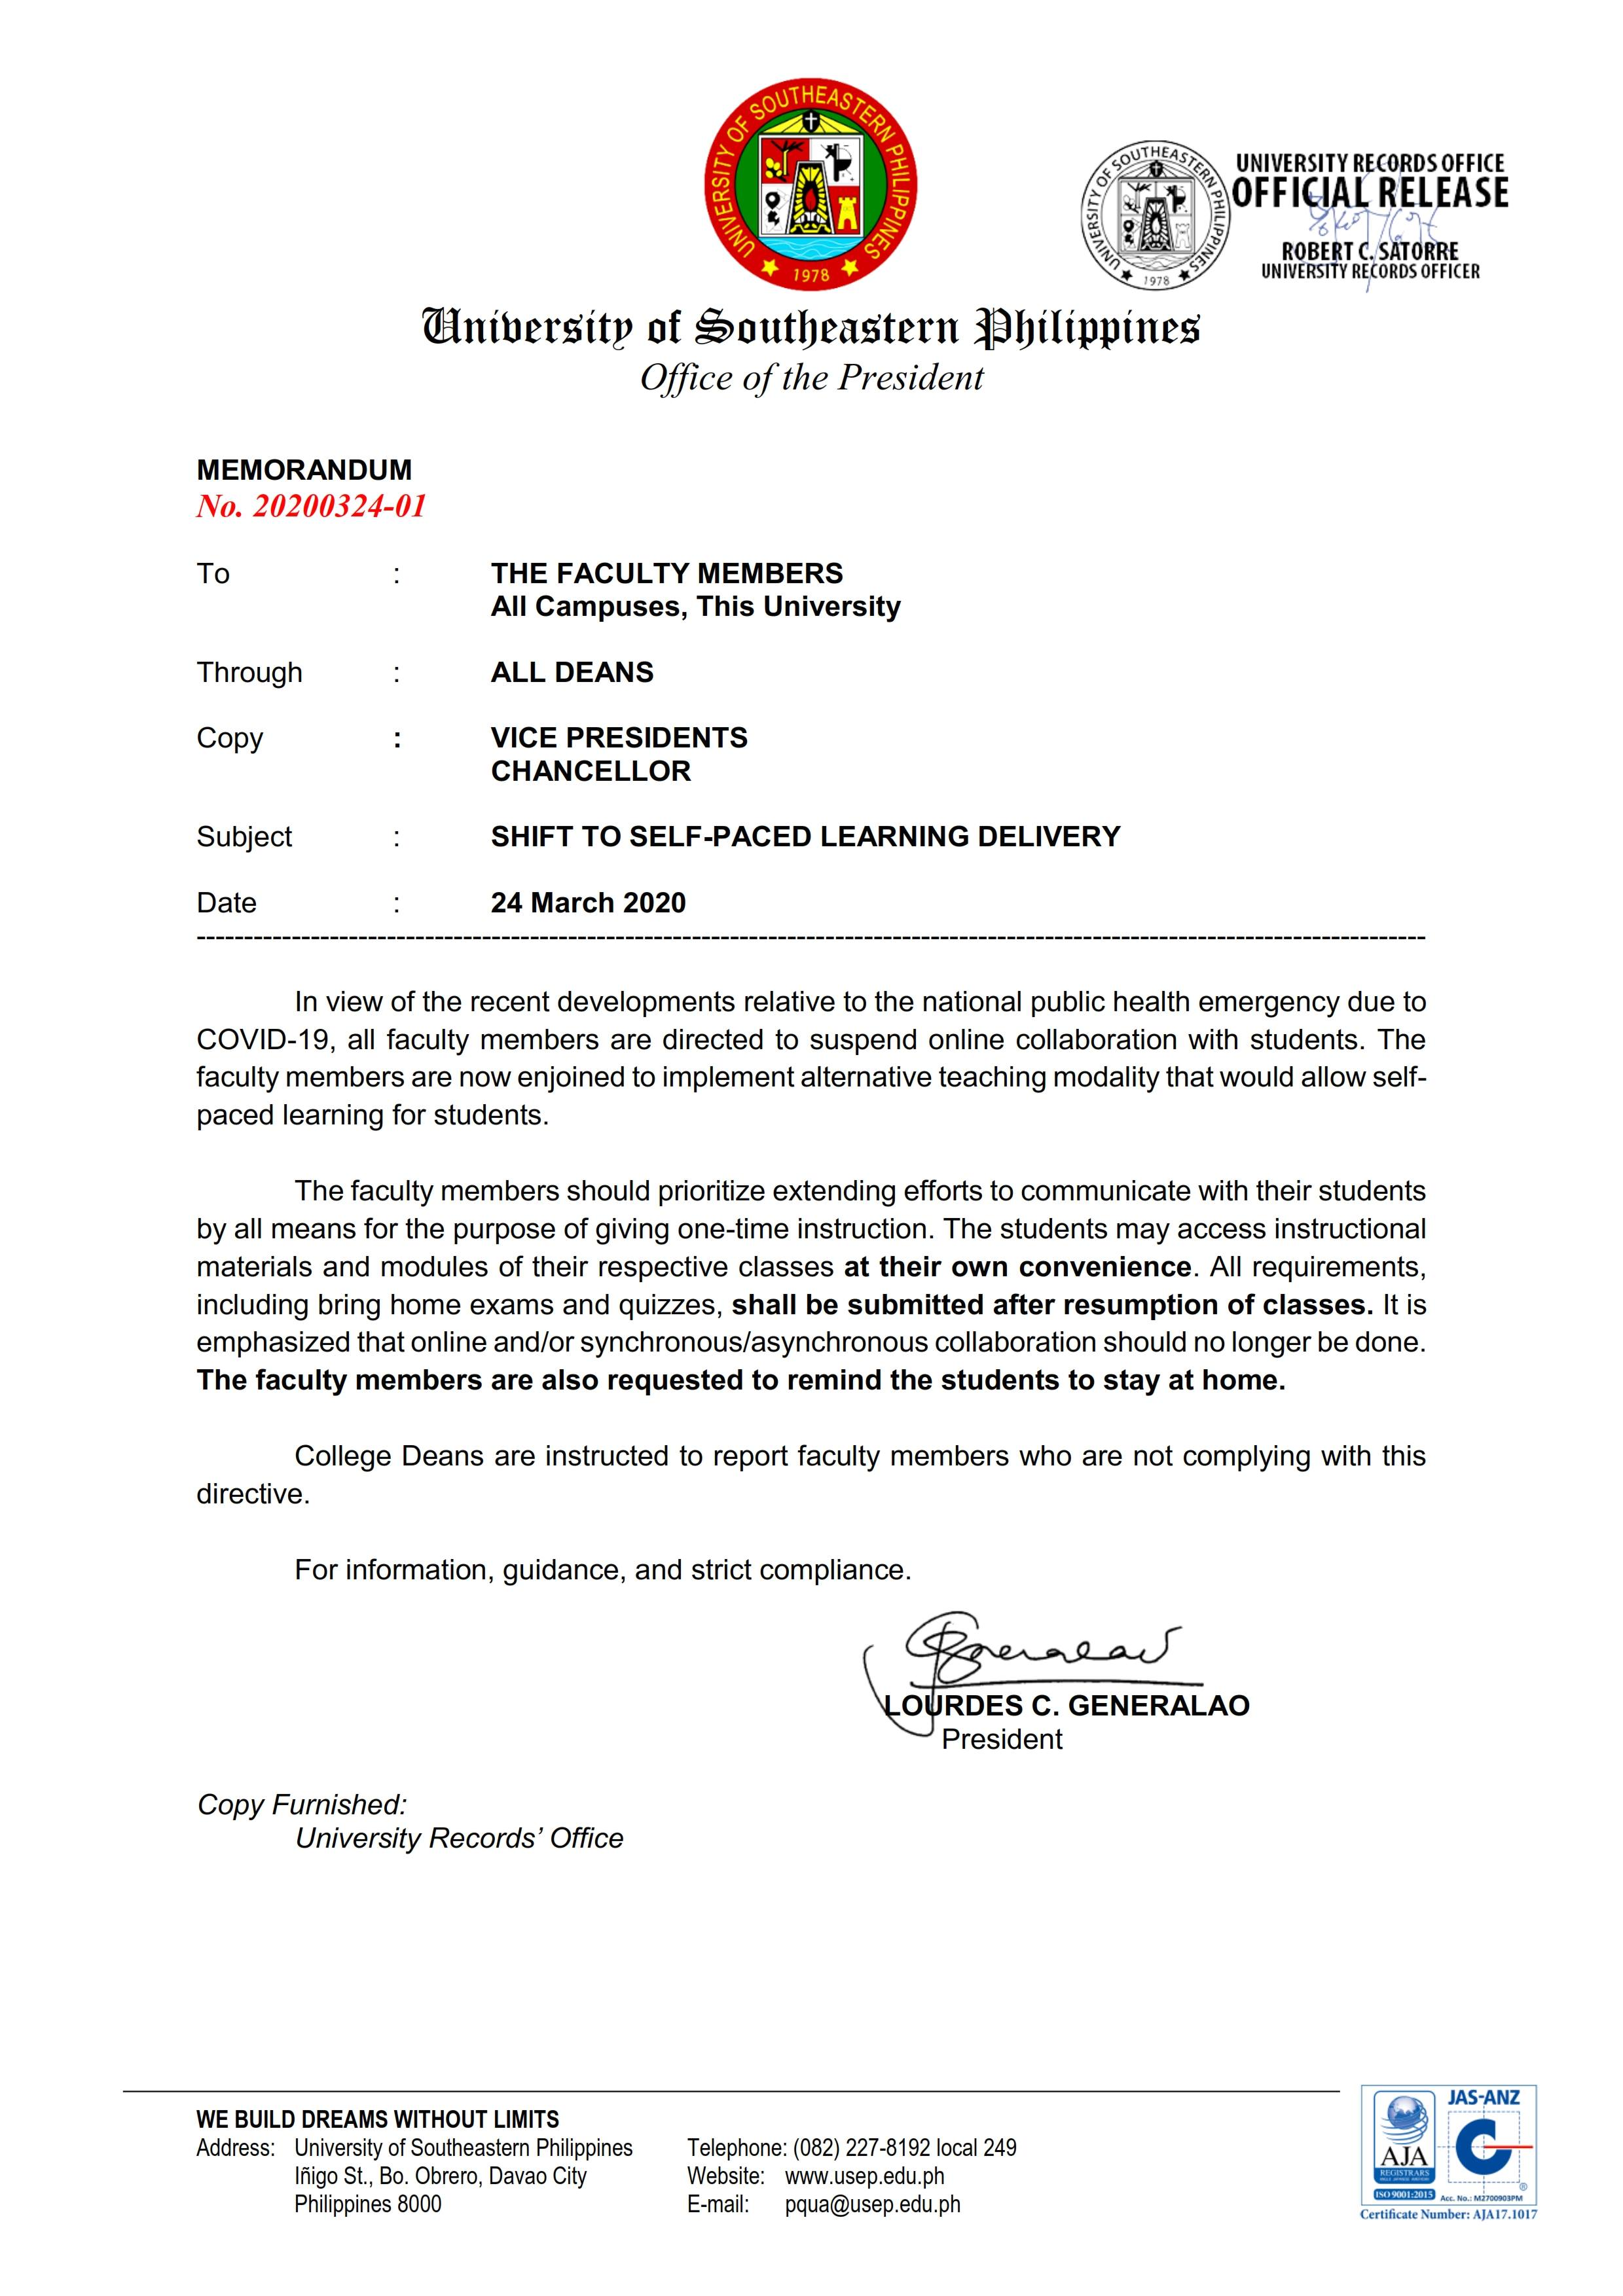 Memorandum regarding the Shift to Self-Paced Learning Delivery